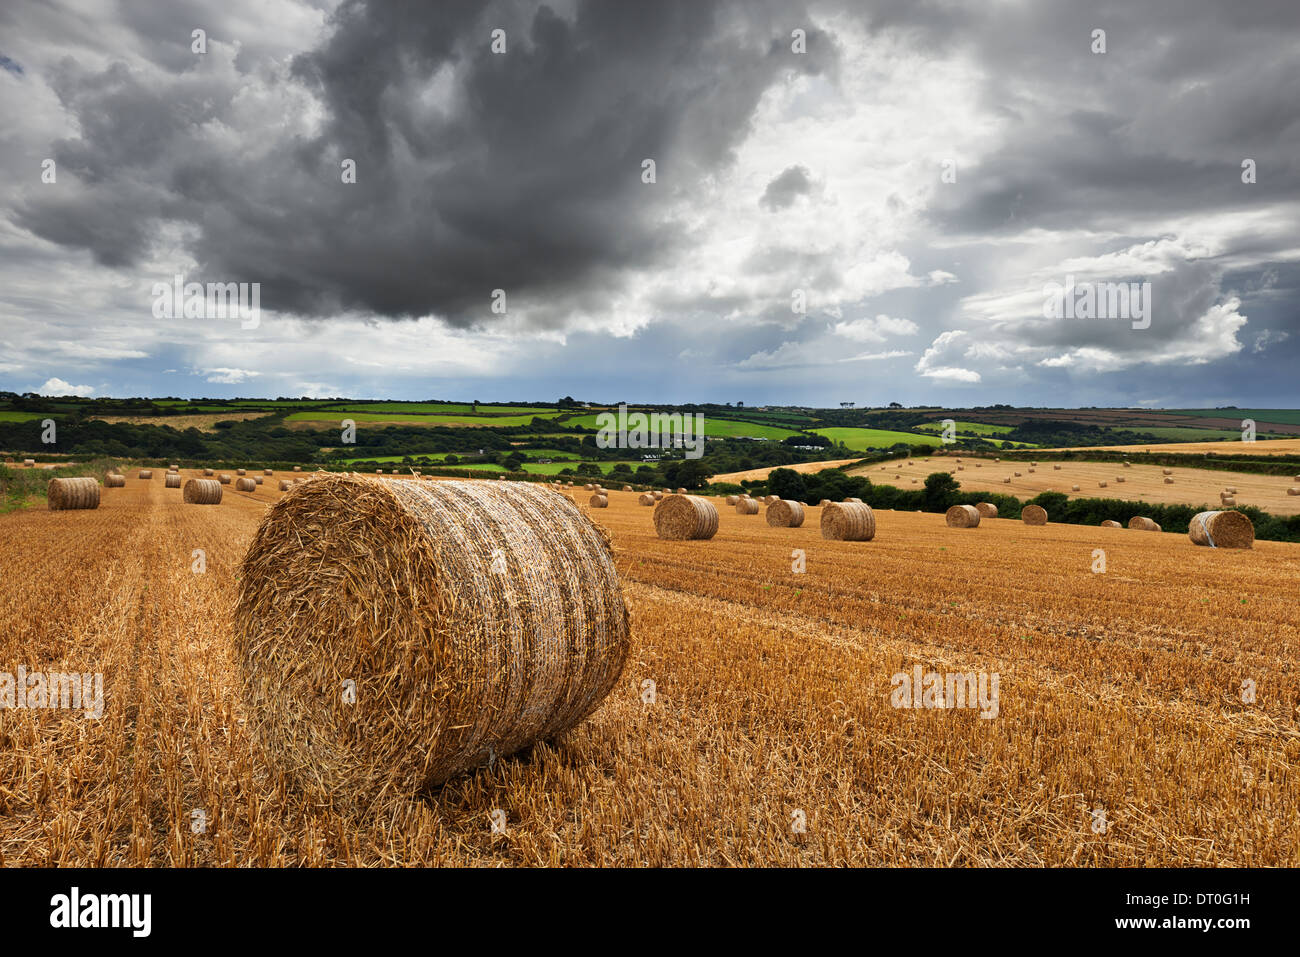 A field of hay bales located in the Cornish countryside under a stormy sky - Stock Image